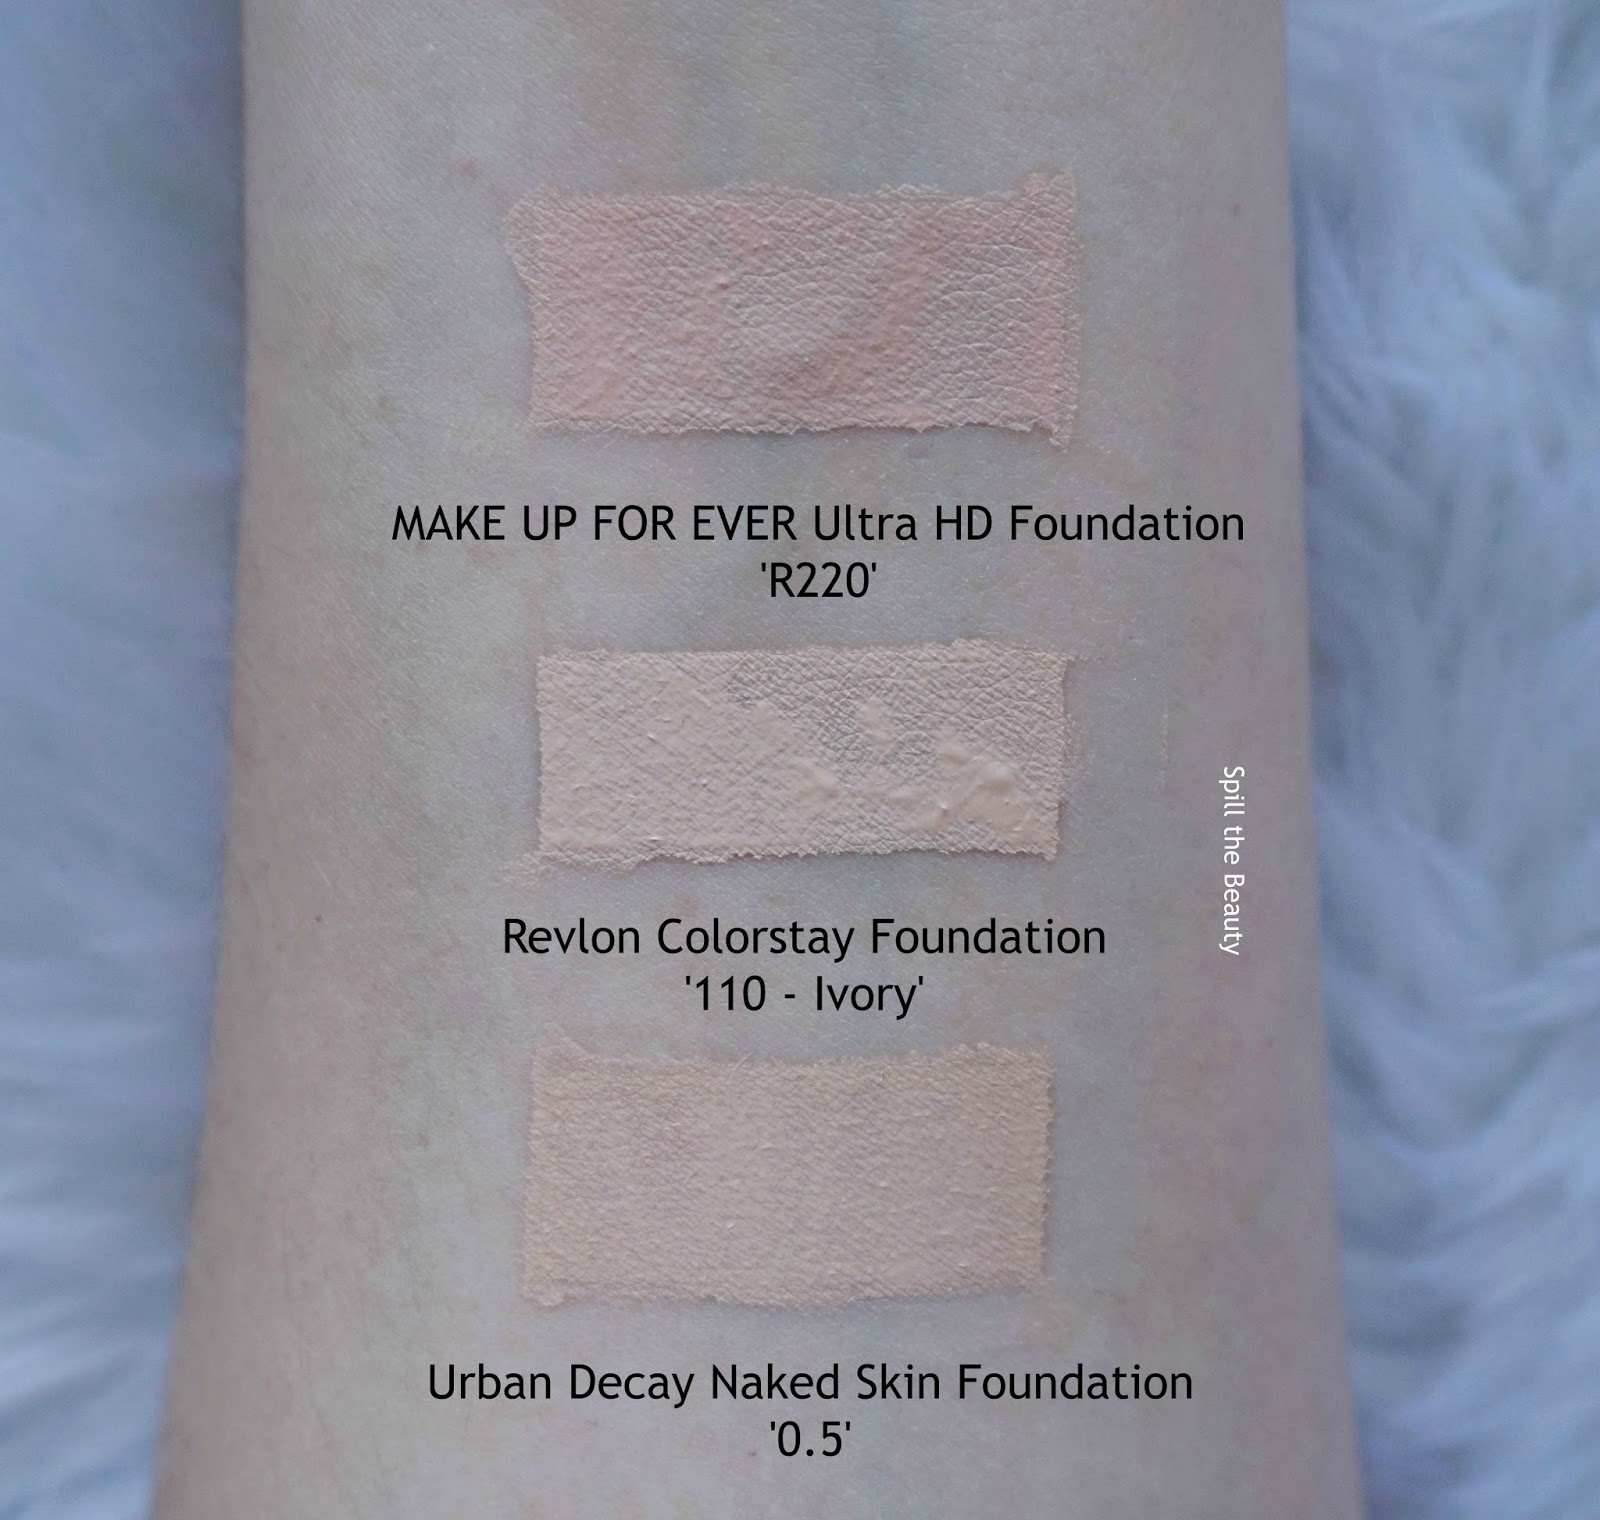 evlon colorstay combination oily foundation review swatches comparison 110 ivory before and after urban decay make up for ever ultra hd